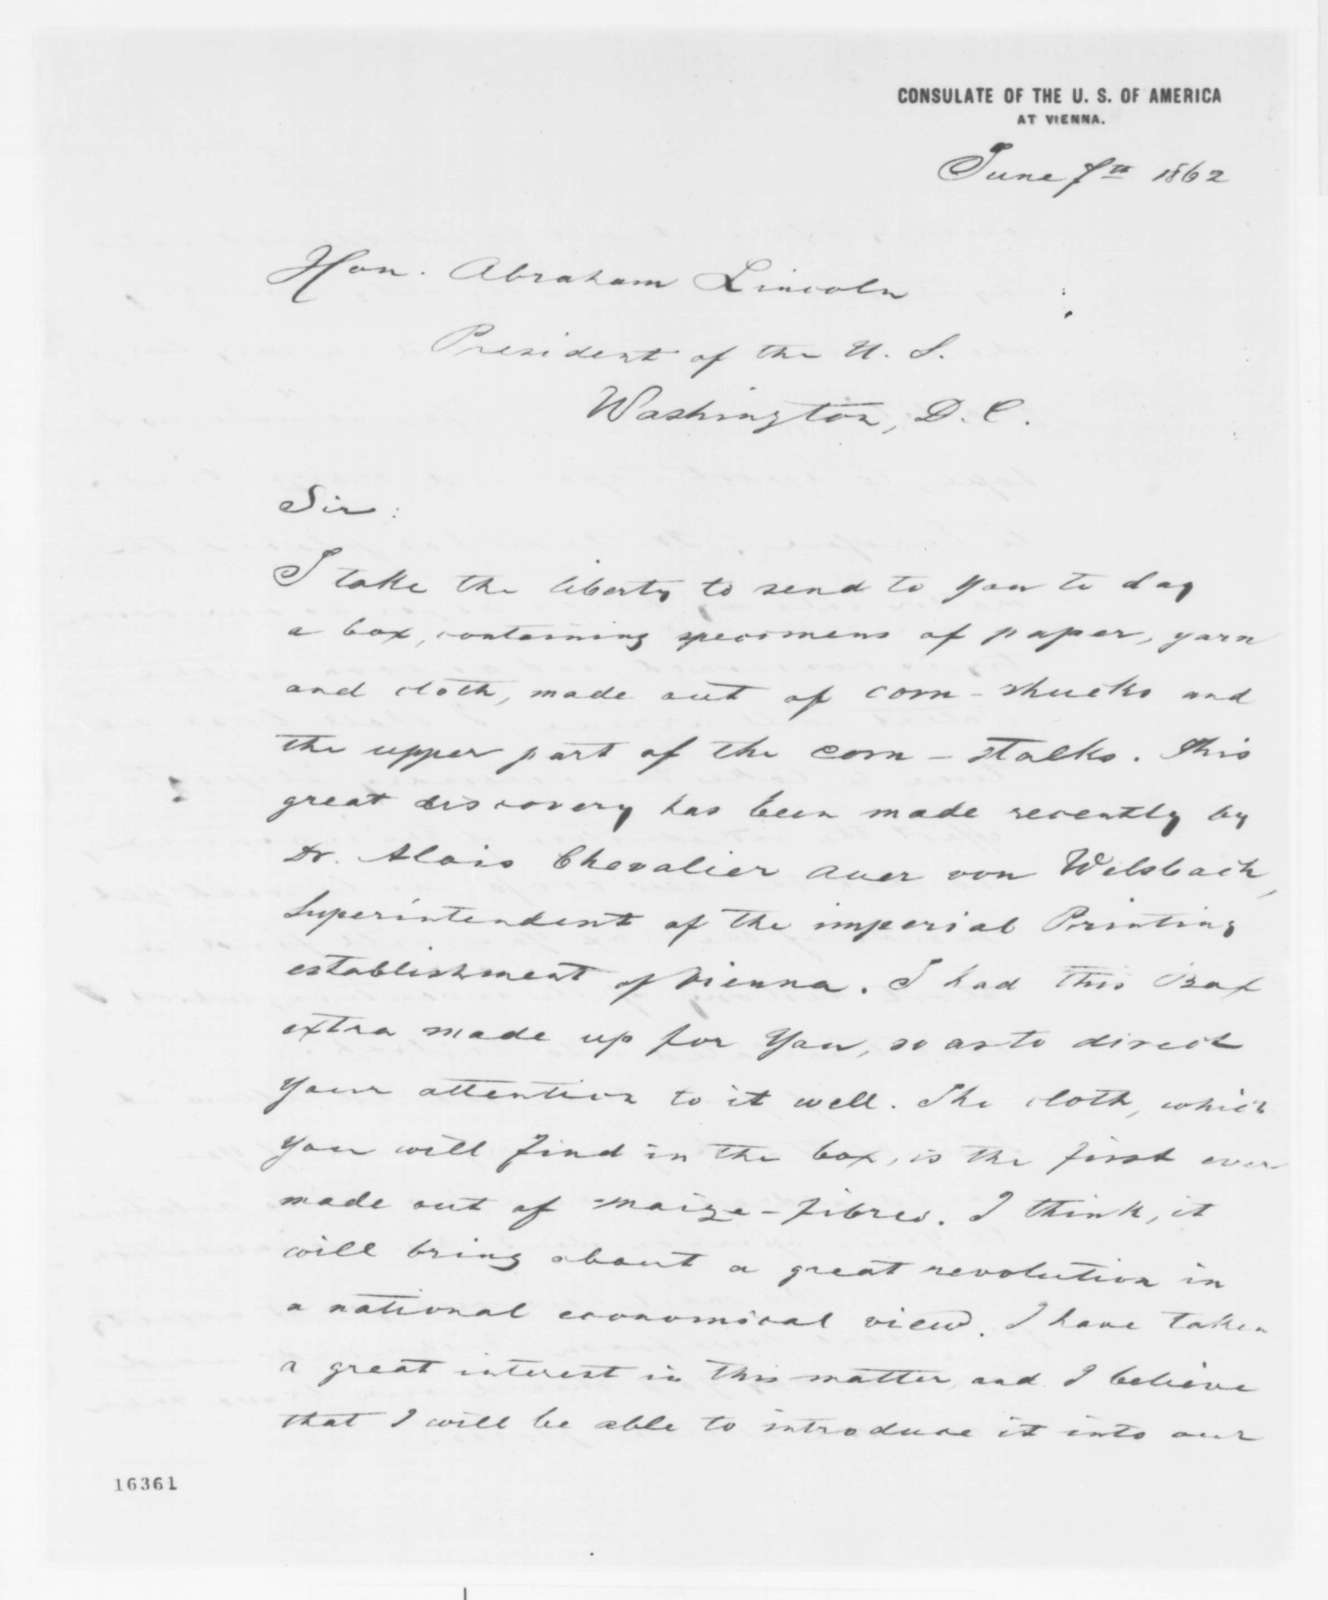 Theodore Canisius to Abraham Lincoln, Saturday, June 07, 1862  (Sends products made from corn)